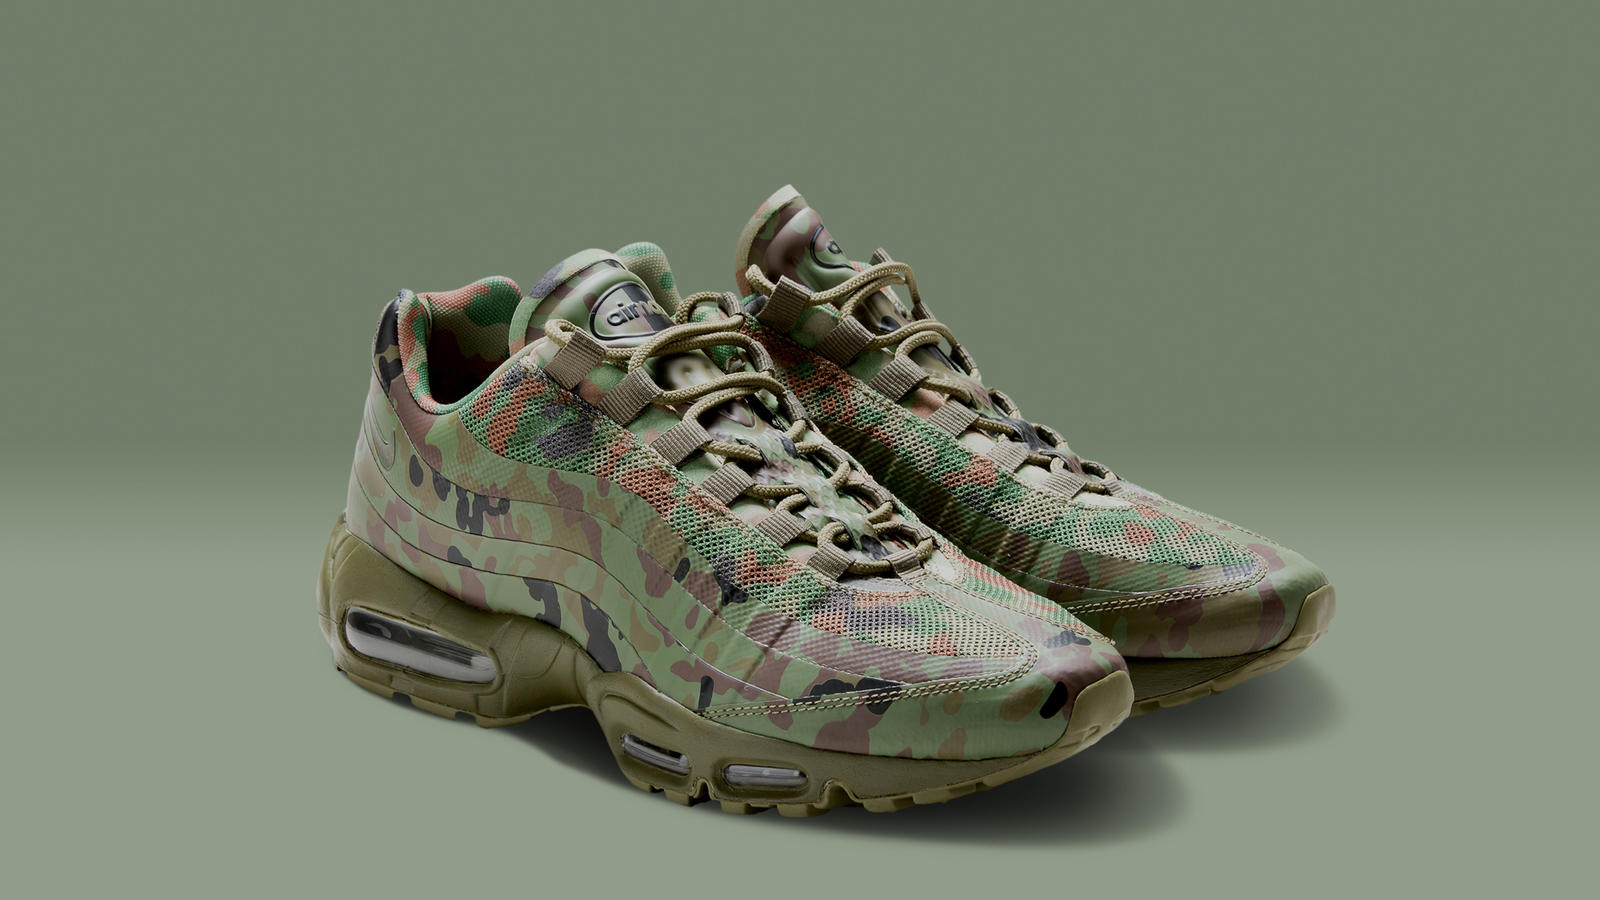 biggest discount factory outlets outlet for sale Revealed: the Nike Air Max Camo Collection - Nike News